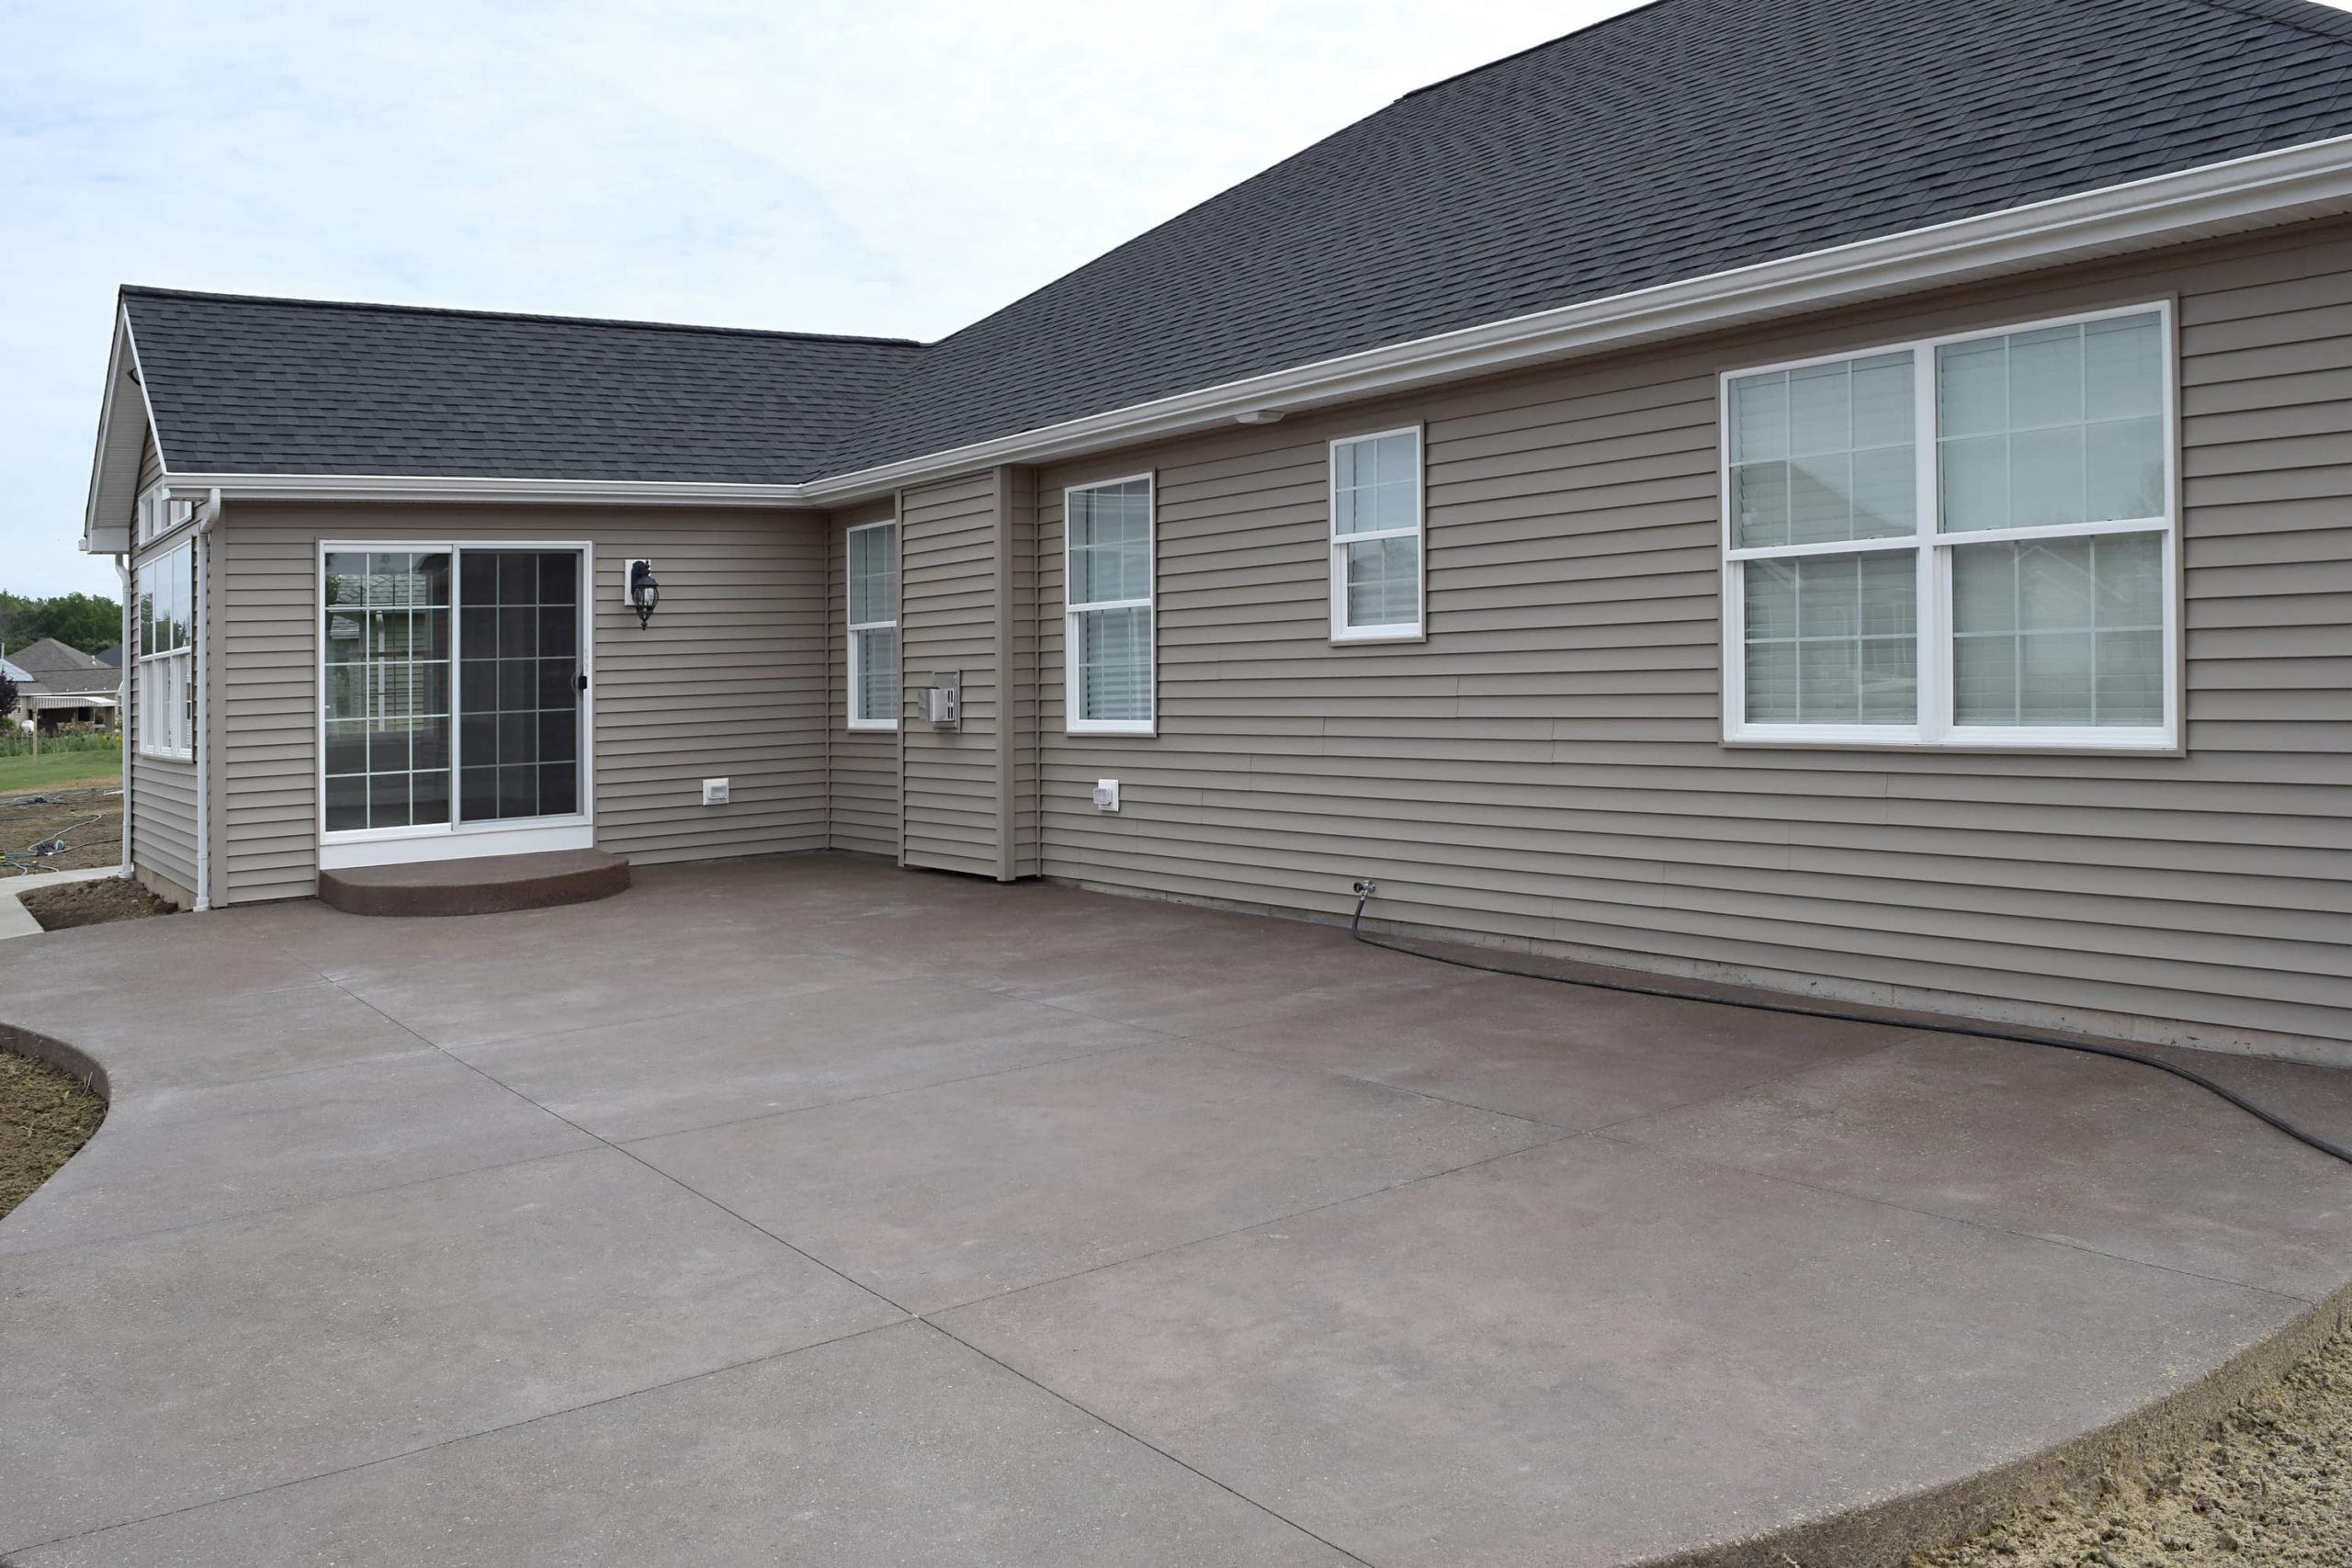 This is an image of a concrete patio in the back of a house.